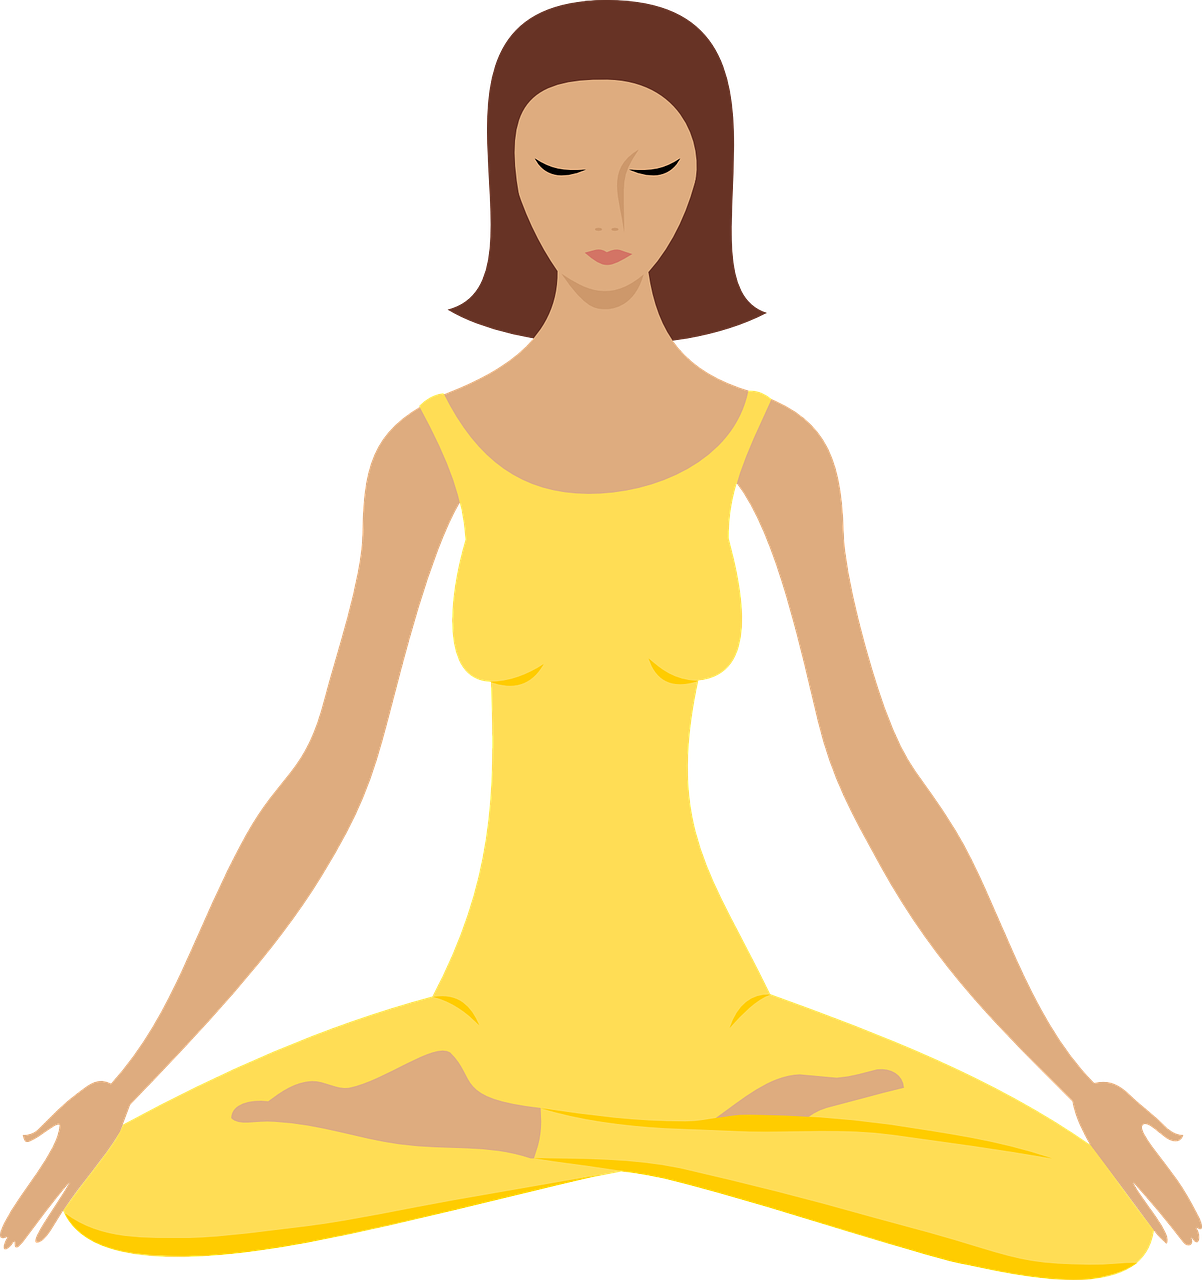 free download Meditation clipart fit woman. Pin by ali learntrainlive.